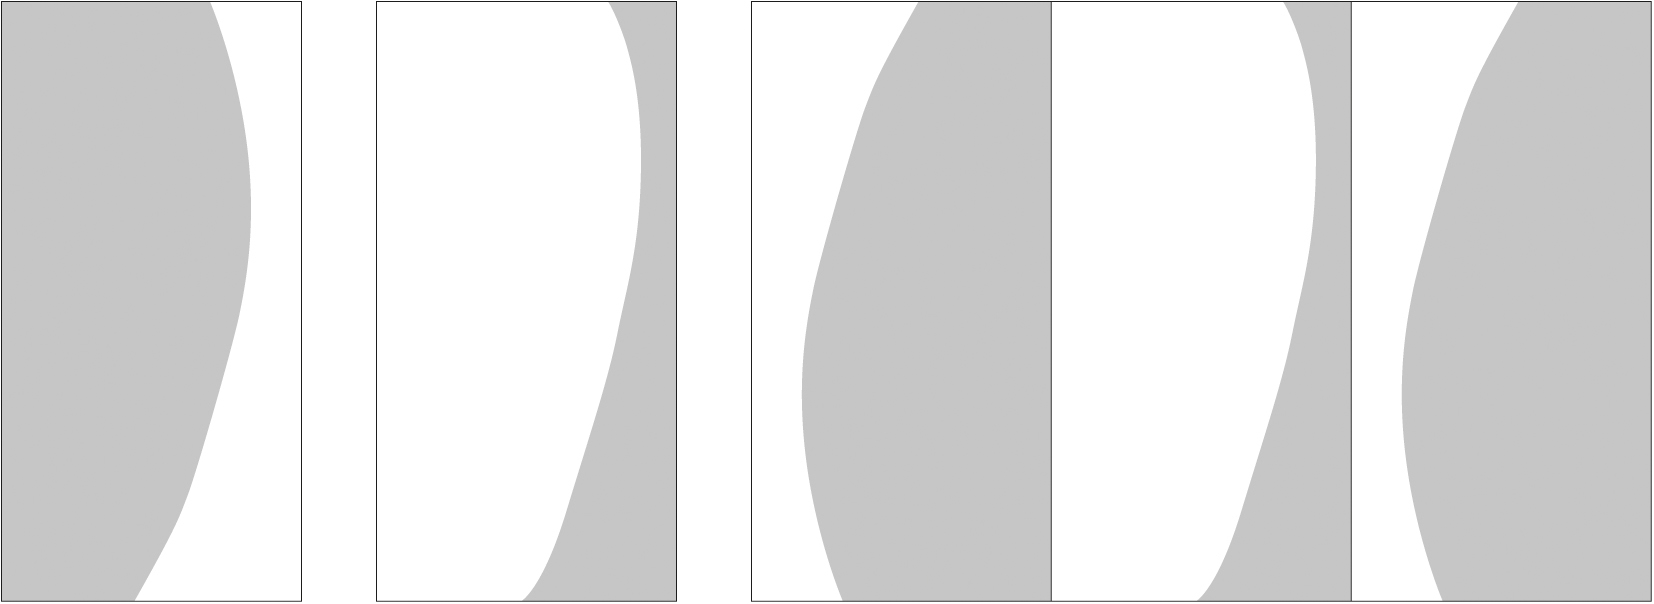 """Single Panel """"East"""" (108"""" height by full width), Single Panel """"West"""", and Multi-Panel Variation"""